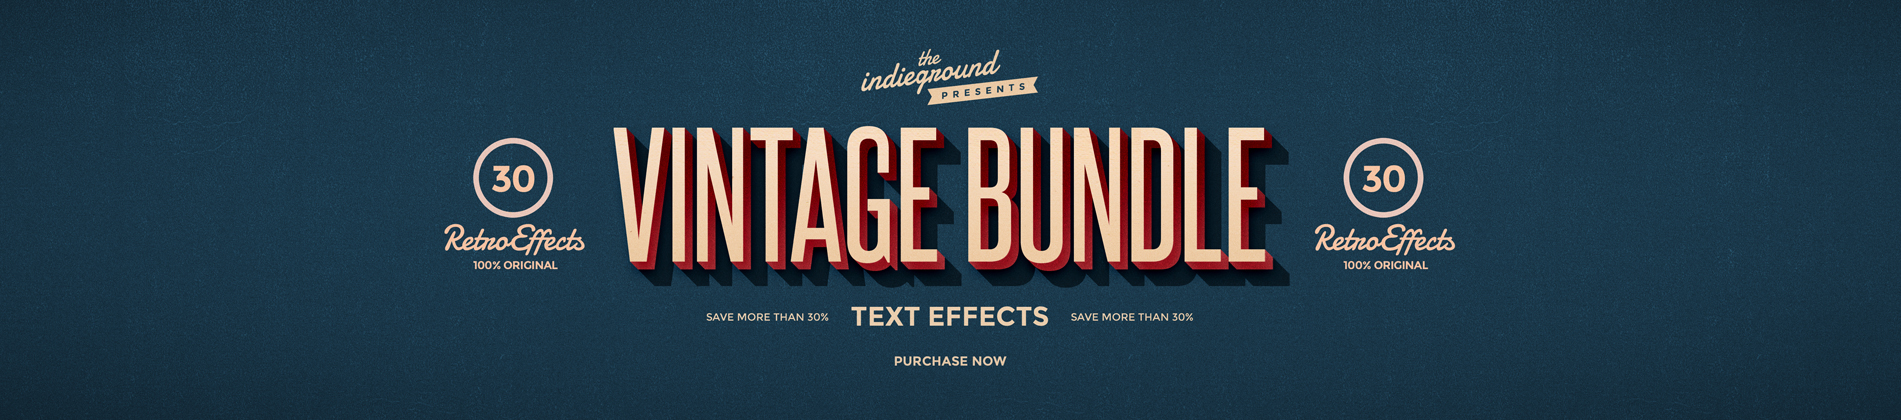 Slider_Resources_RetroTextEffectsBundle